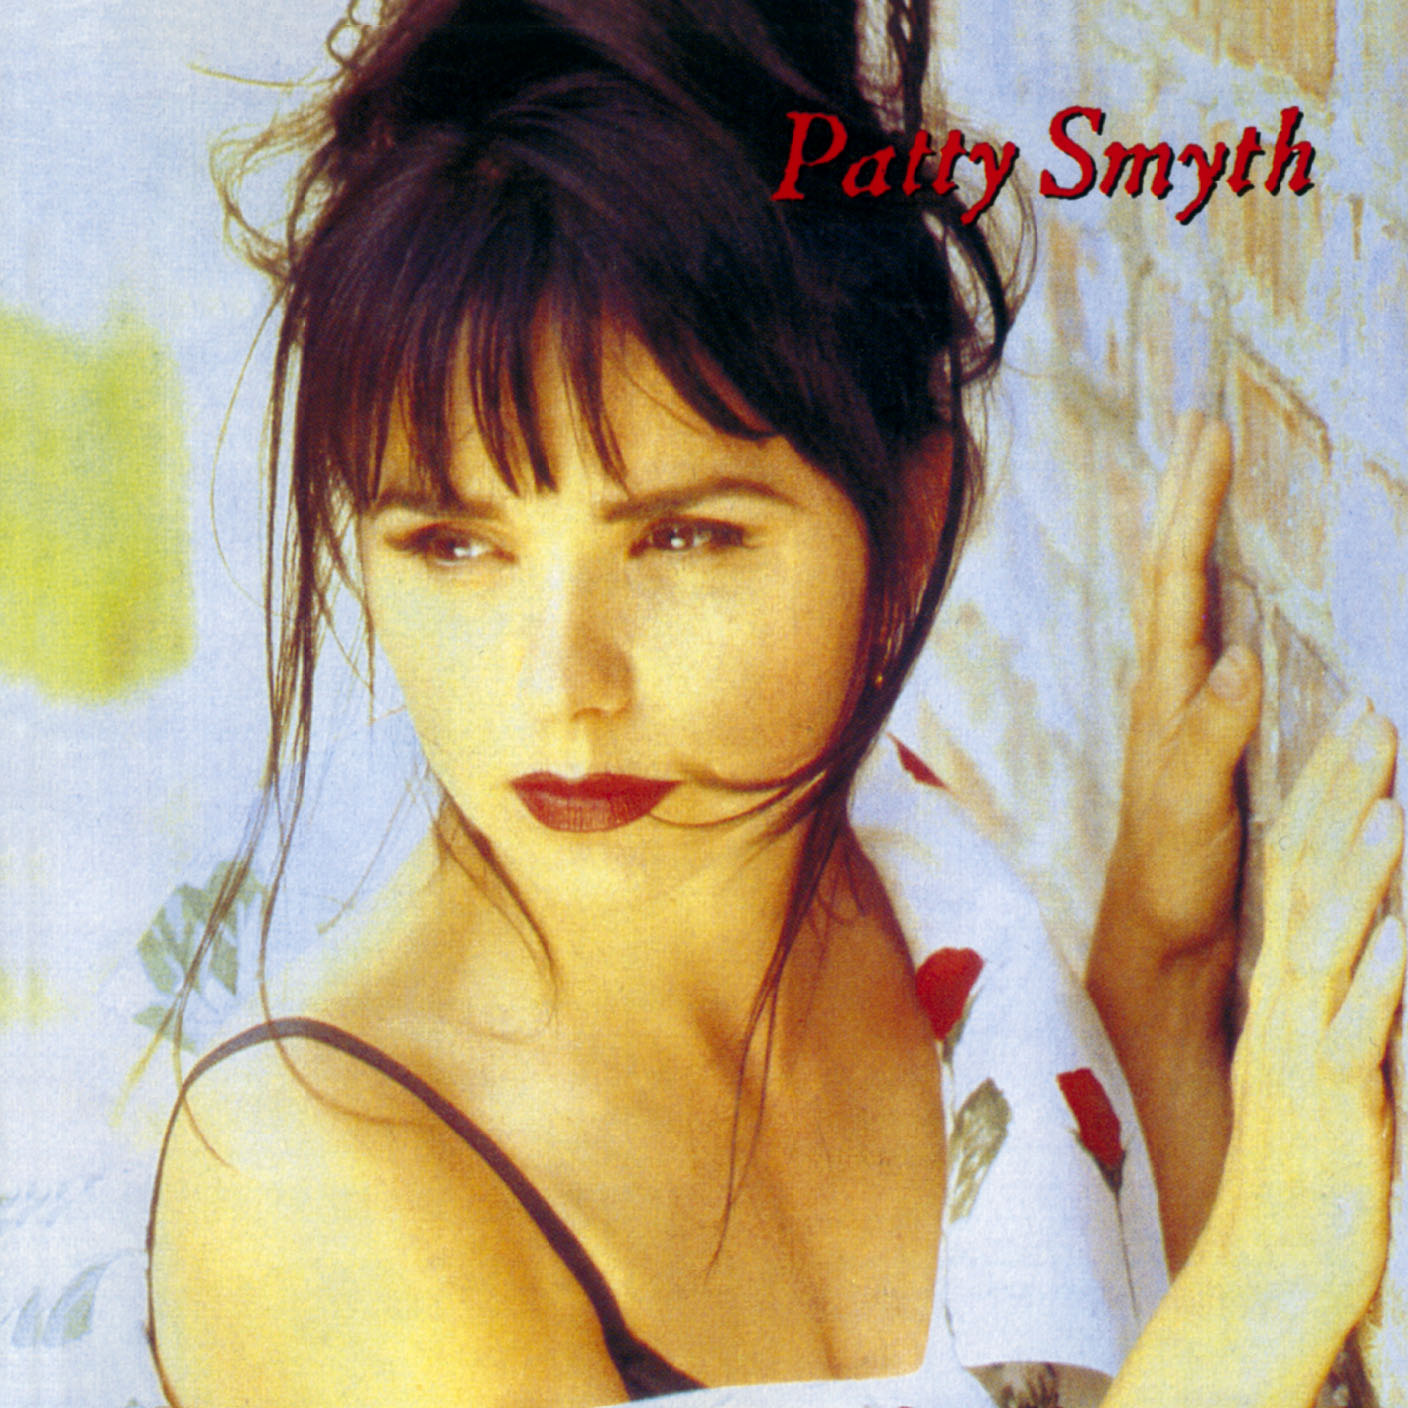 Greatest Hits Featuring Scandal Patty Smyth: Patty Smyth Patty Smyth